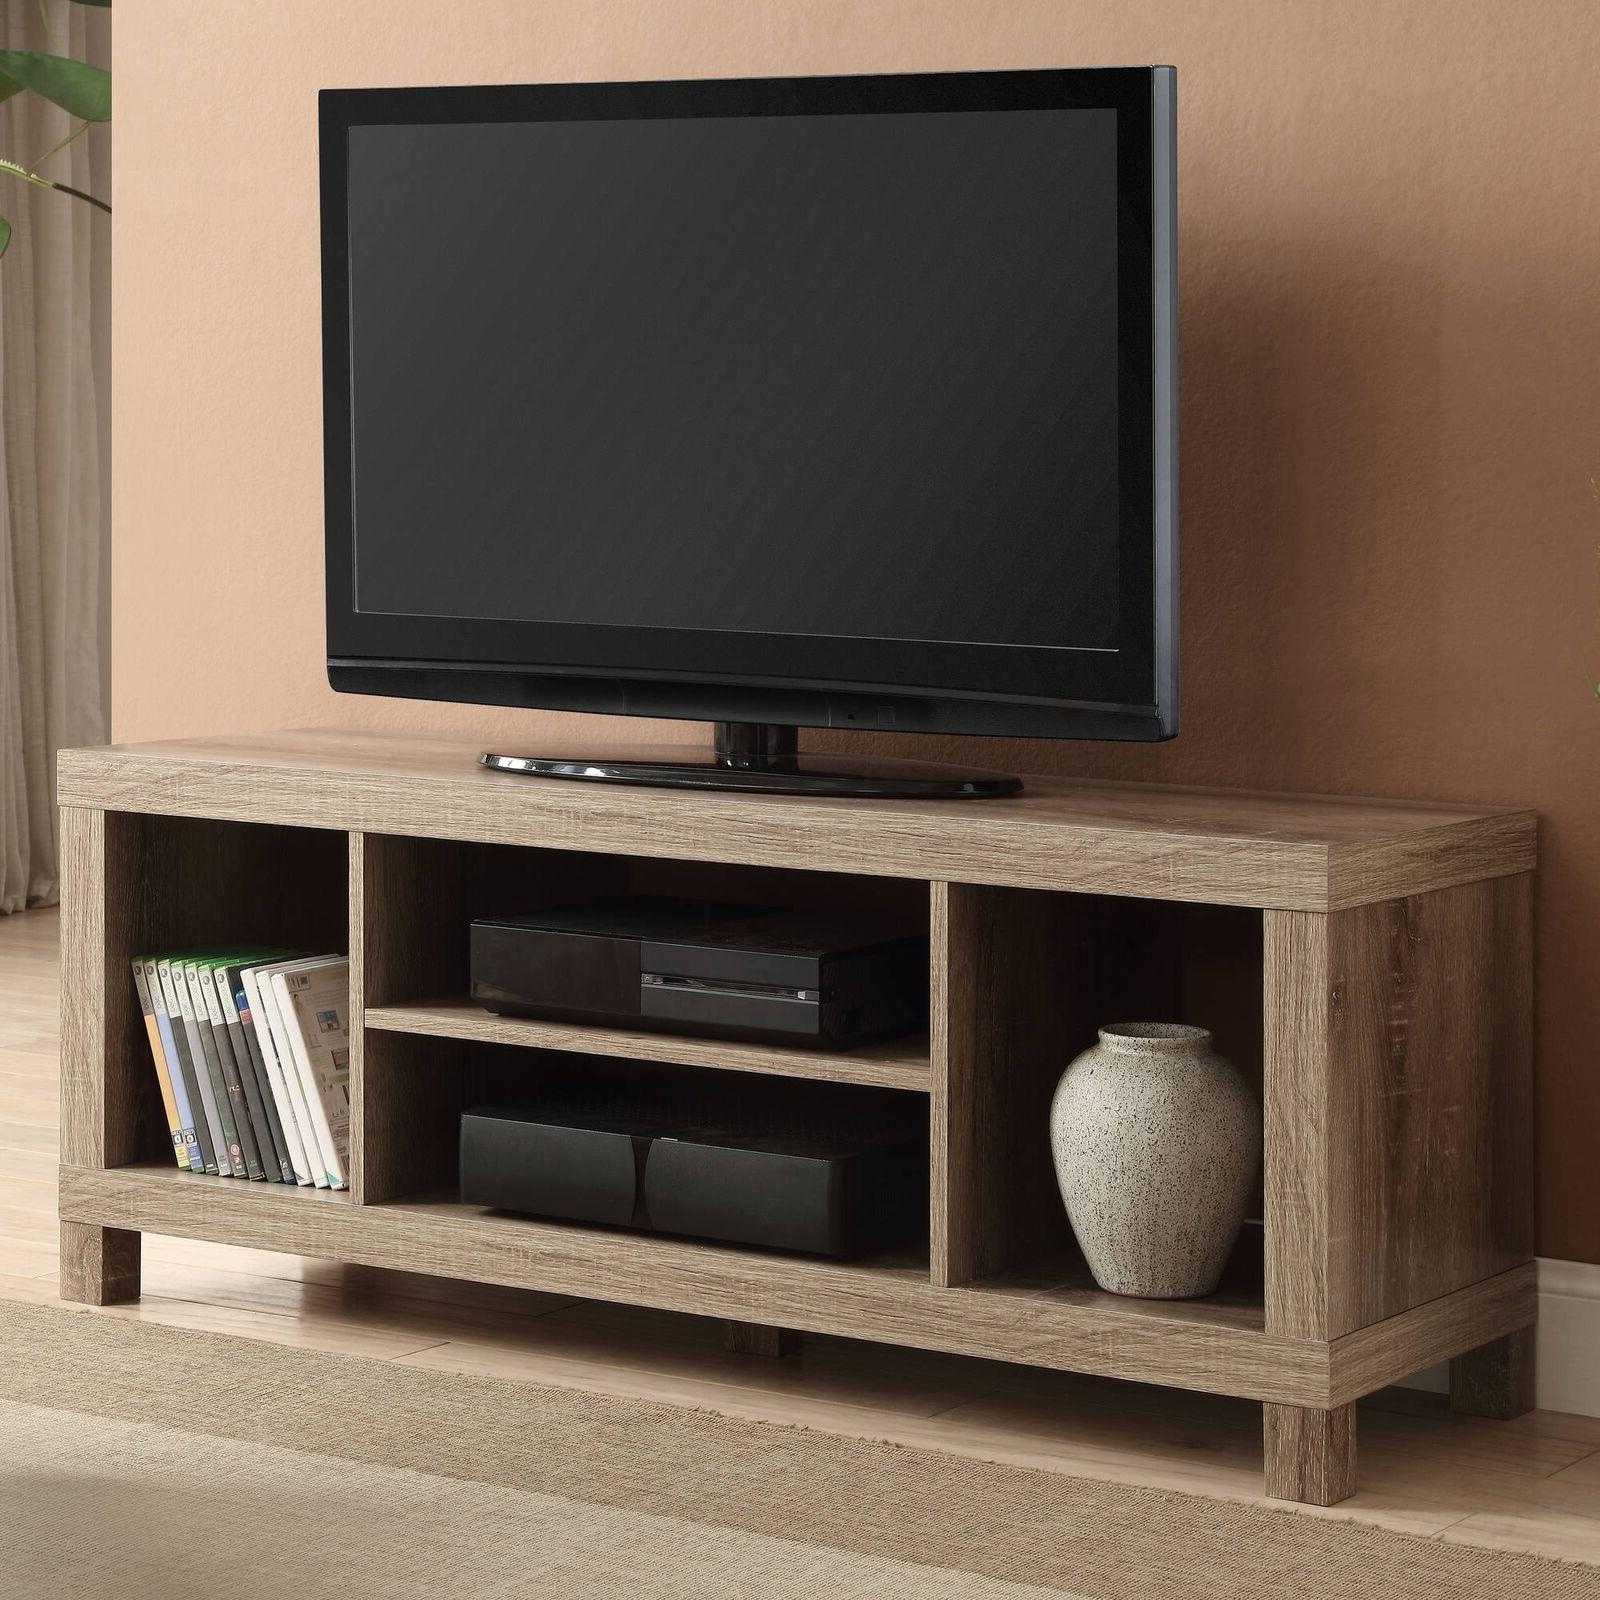 Weathered Wood Furniture TV Stand For 42 Contemporary Media